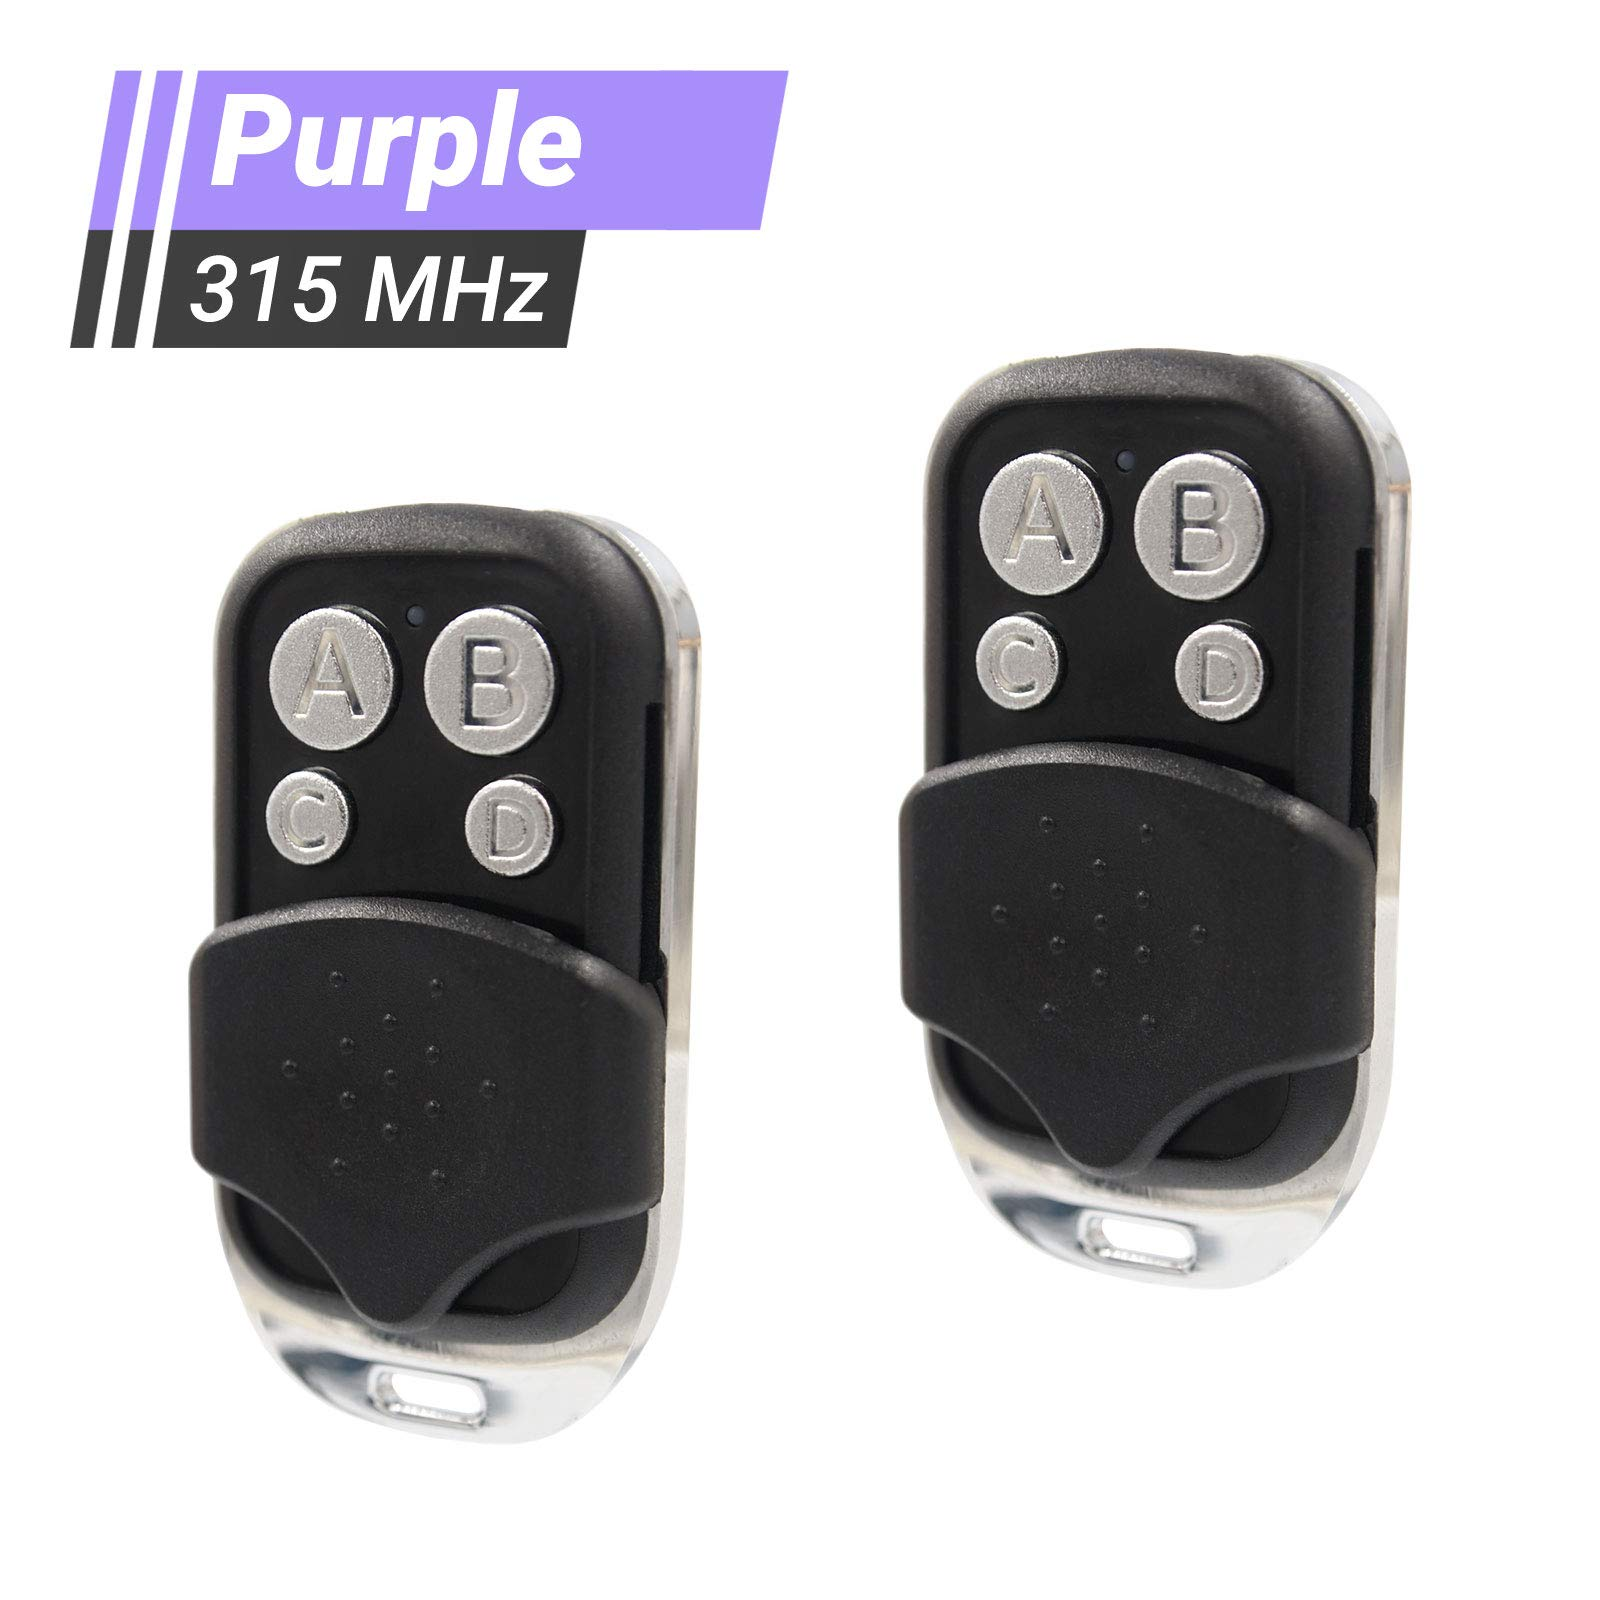 2 Pack - Replacement for LiftMaster 370LM 371LM 372LM 373LM - Chamberlain 950D 953D 956D - Craftsman 139.53753 Remote - Compatible with Garage Door Openers with Purple Learn Button 315MHz (C-SP-315) by Solidremote